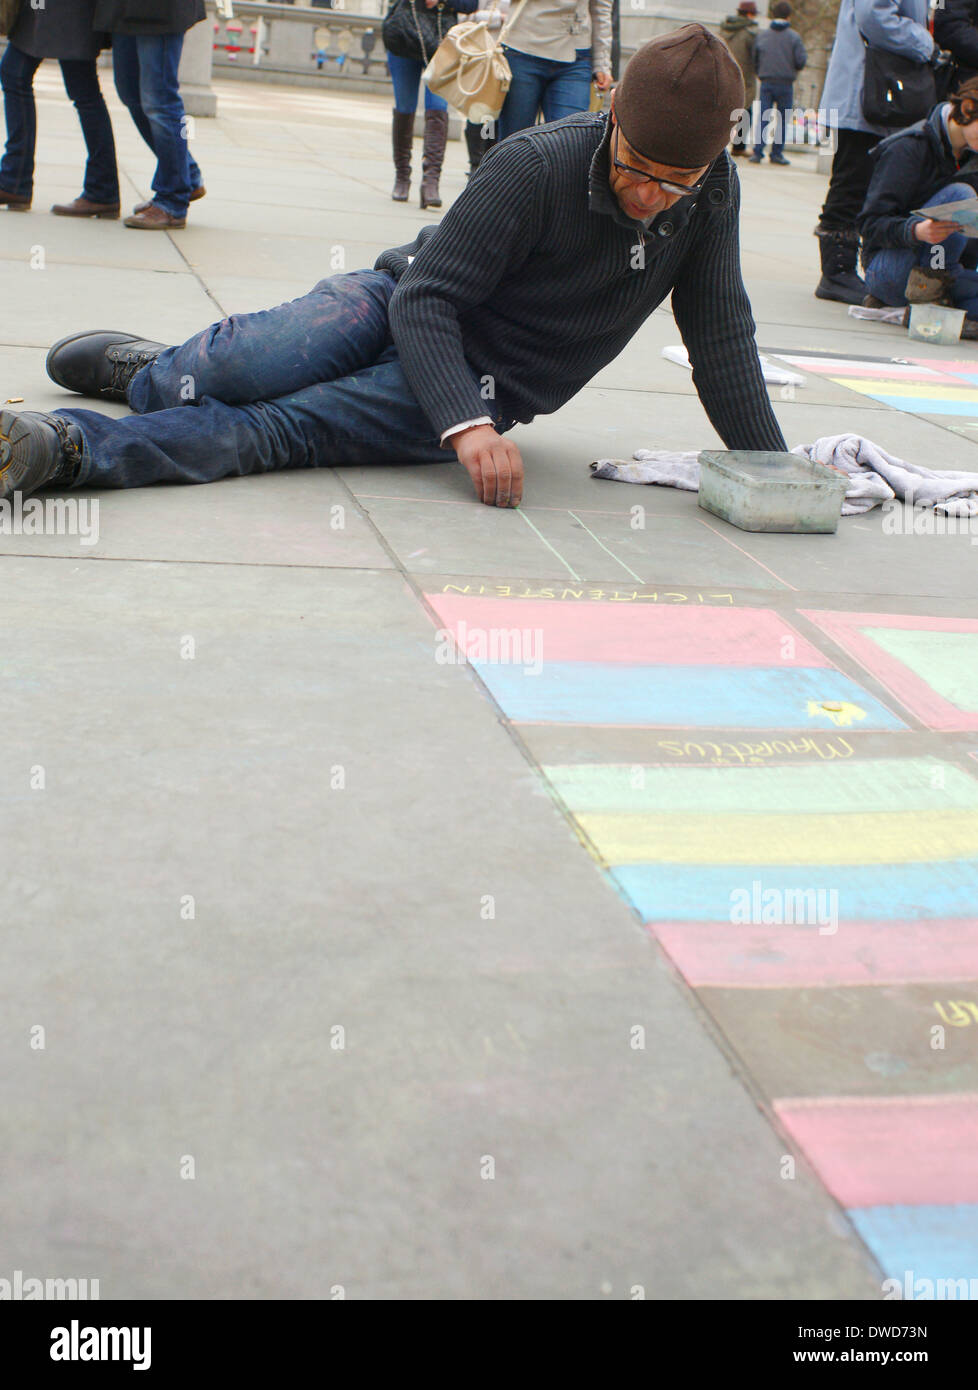 Trafalger Square flagman chalk drawing on pavement outside the National gallery - Stock Image